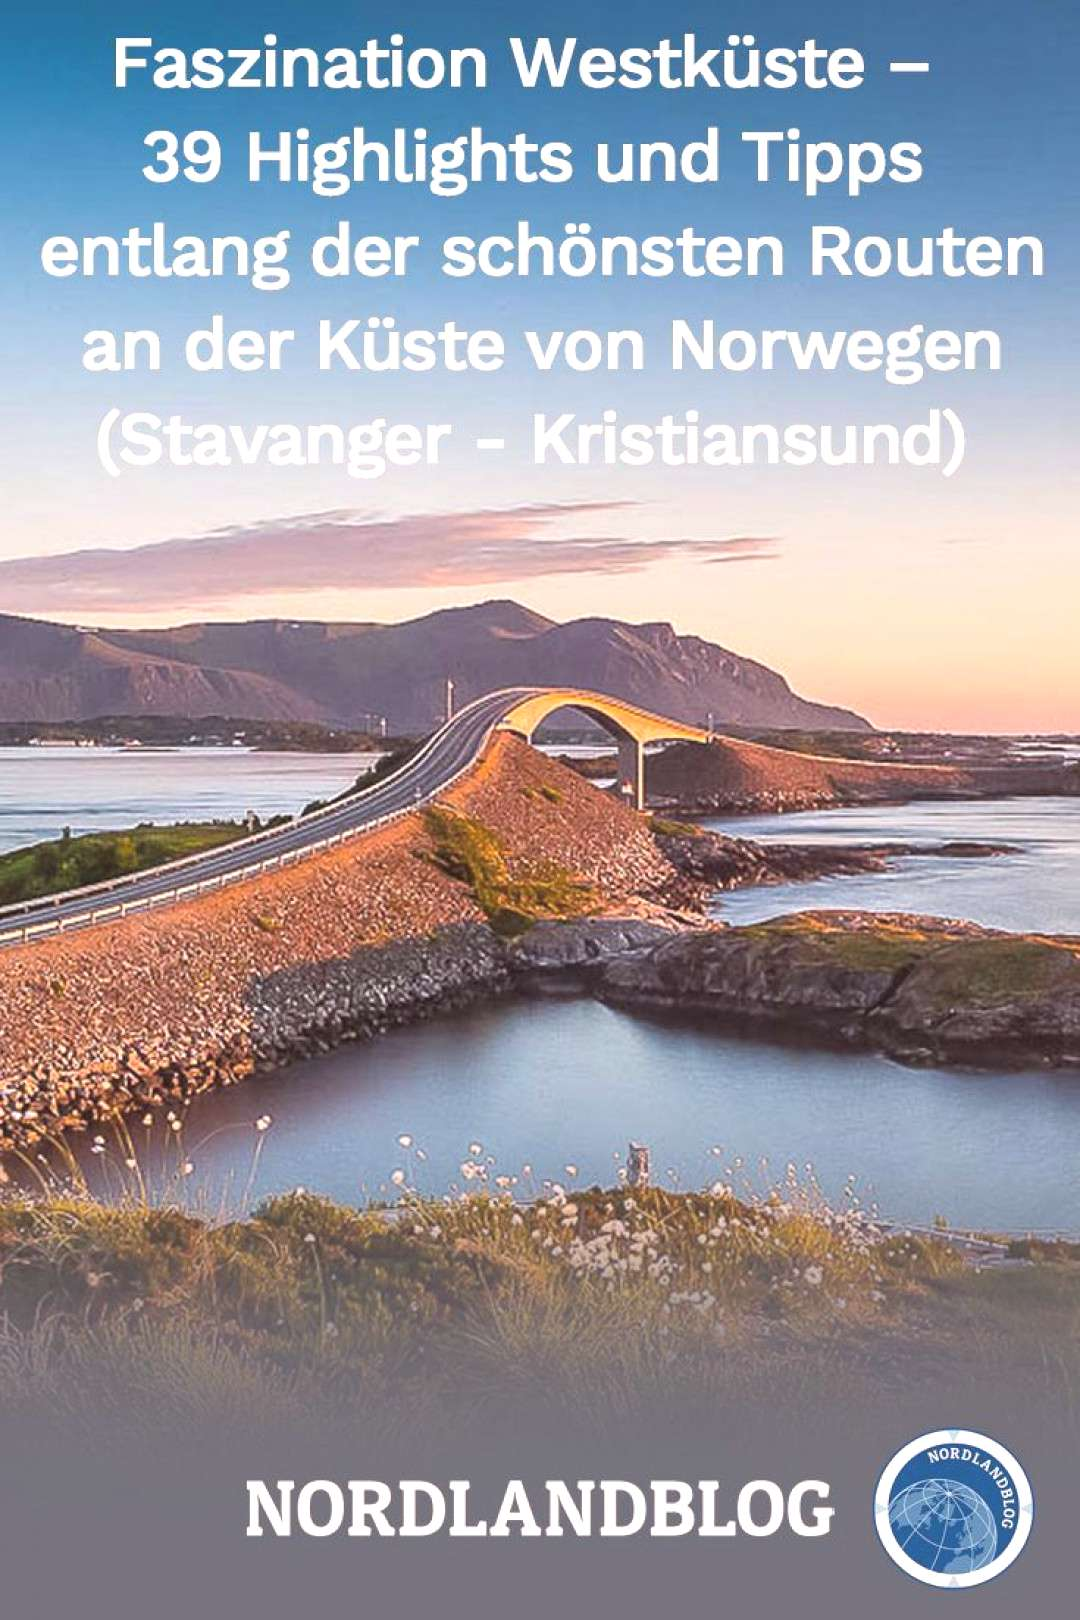 The fascination of western Norway - 39 highlights and tips on the west coast of Norway - 39 highli